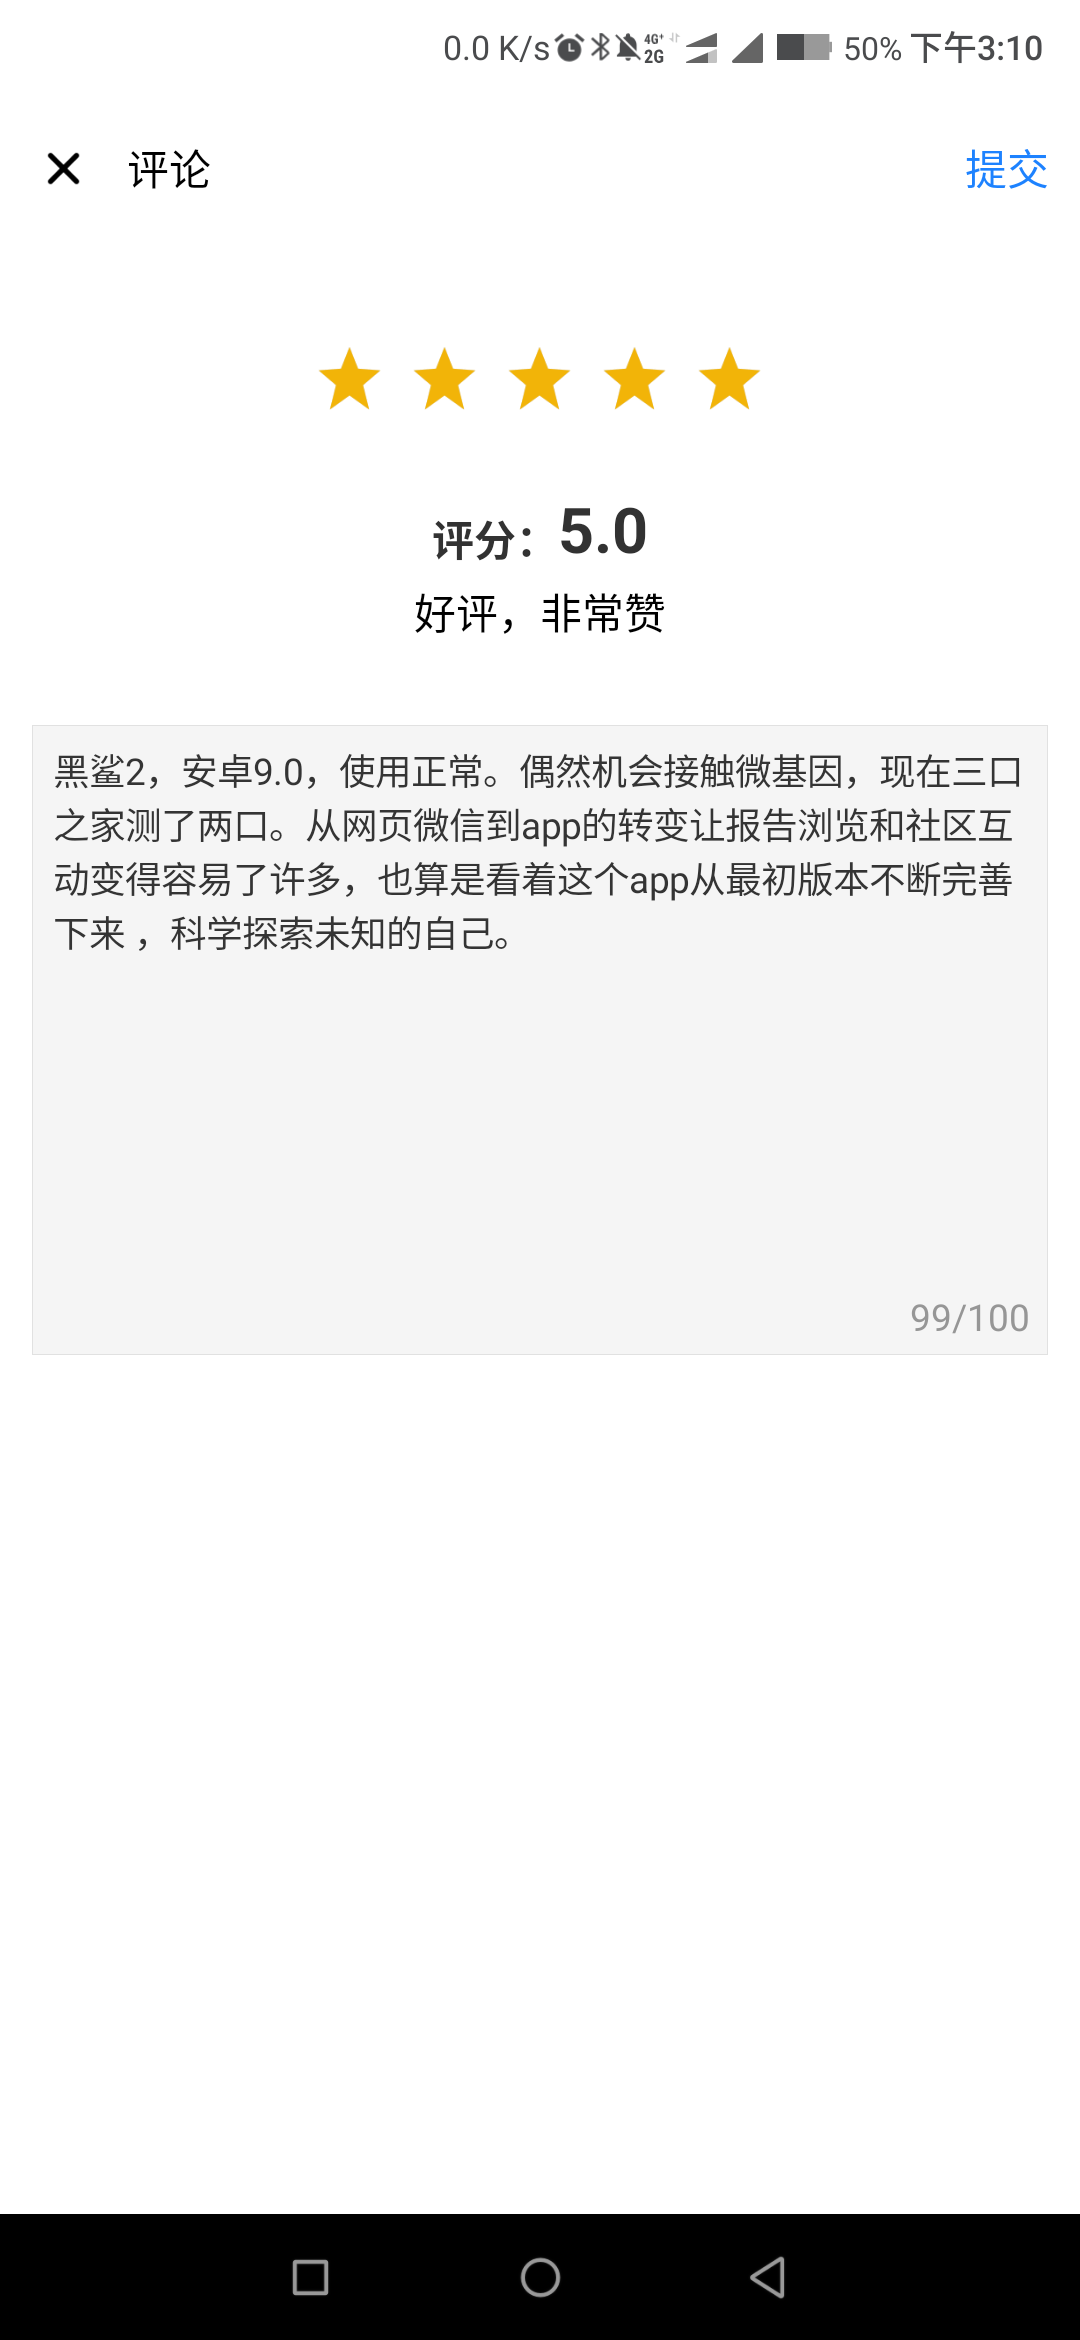 Screenshot_2019-04-03-15-10-49-472_com.tencent_.android_.qqdownloader_.png